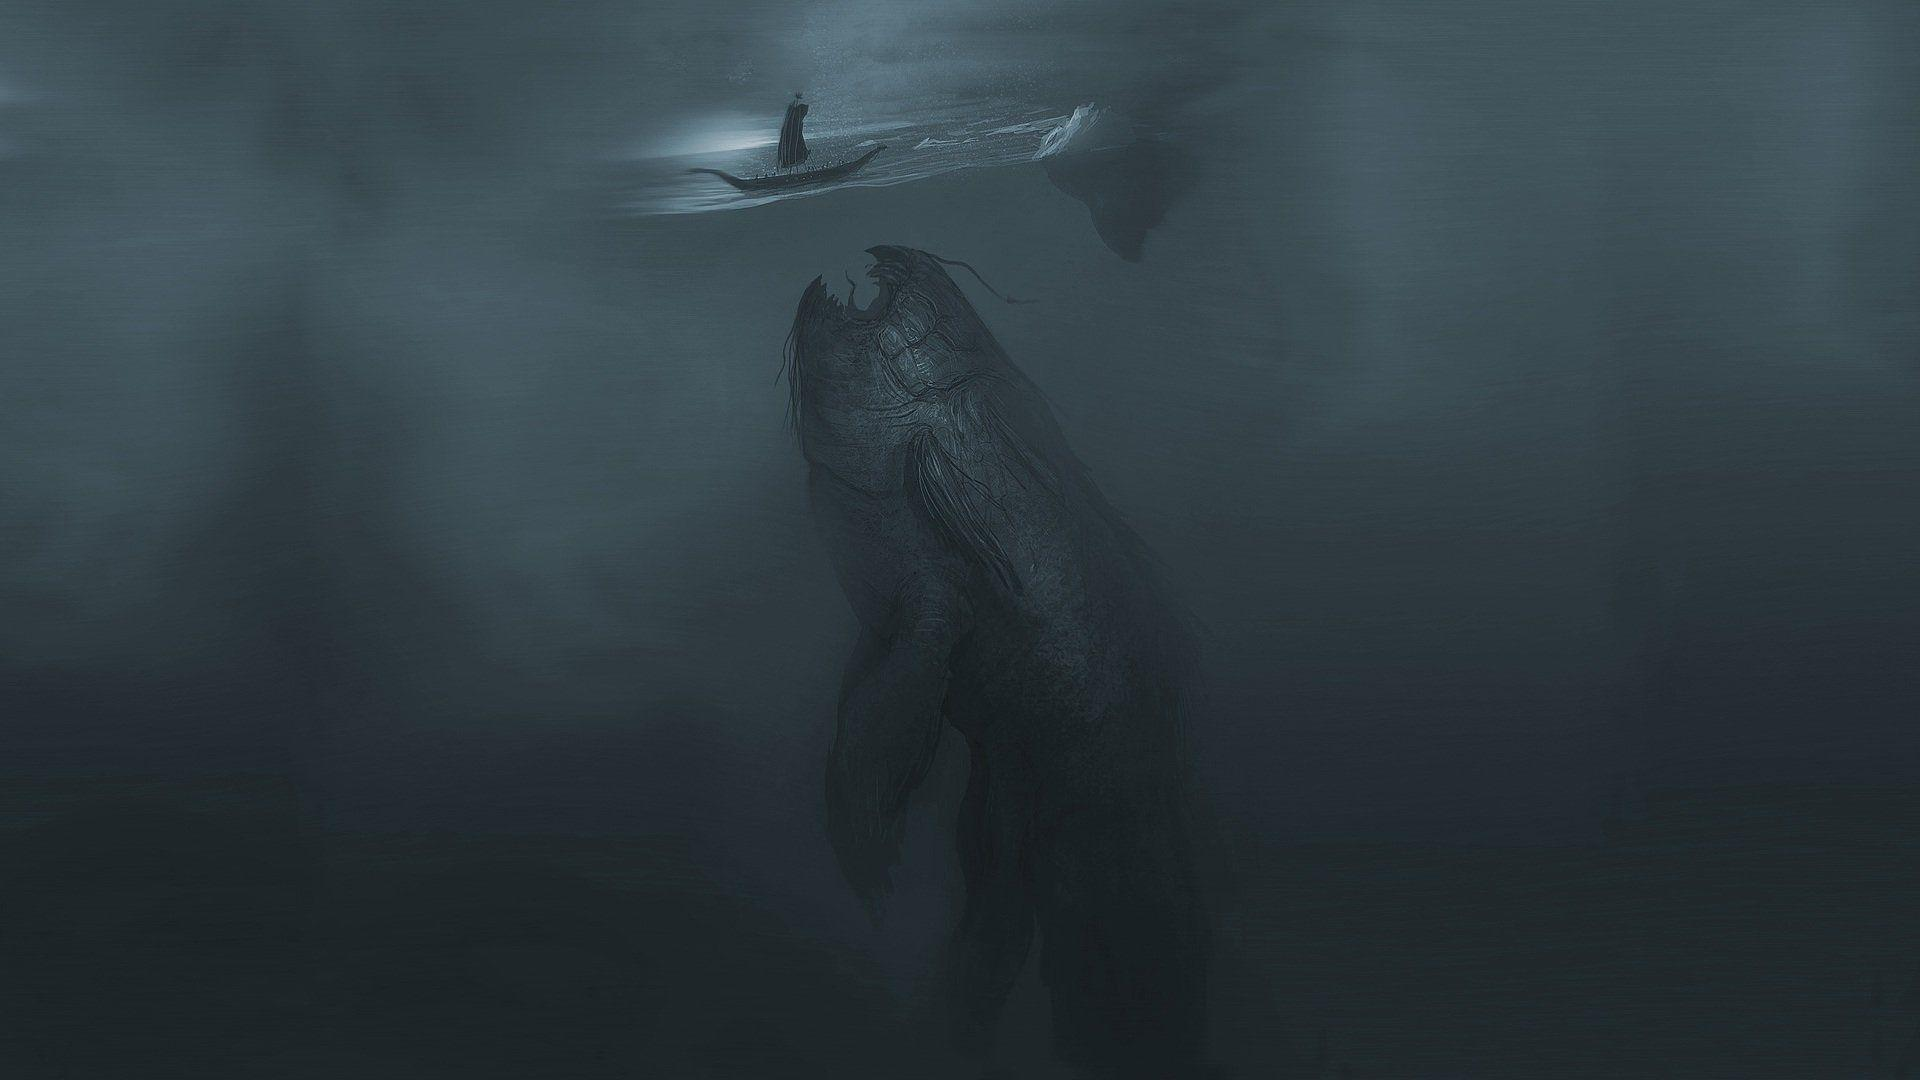 132 Sea Monster HD Wallpapers | Backgrounds - Wallpaper Abyss - Page 2